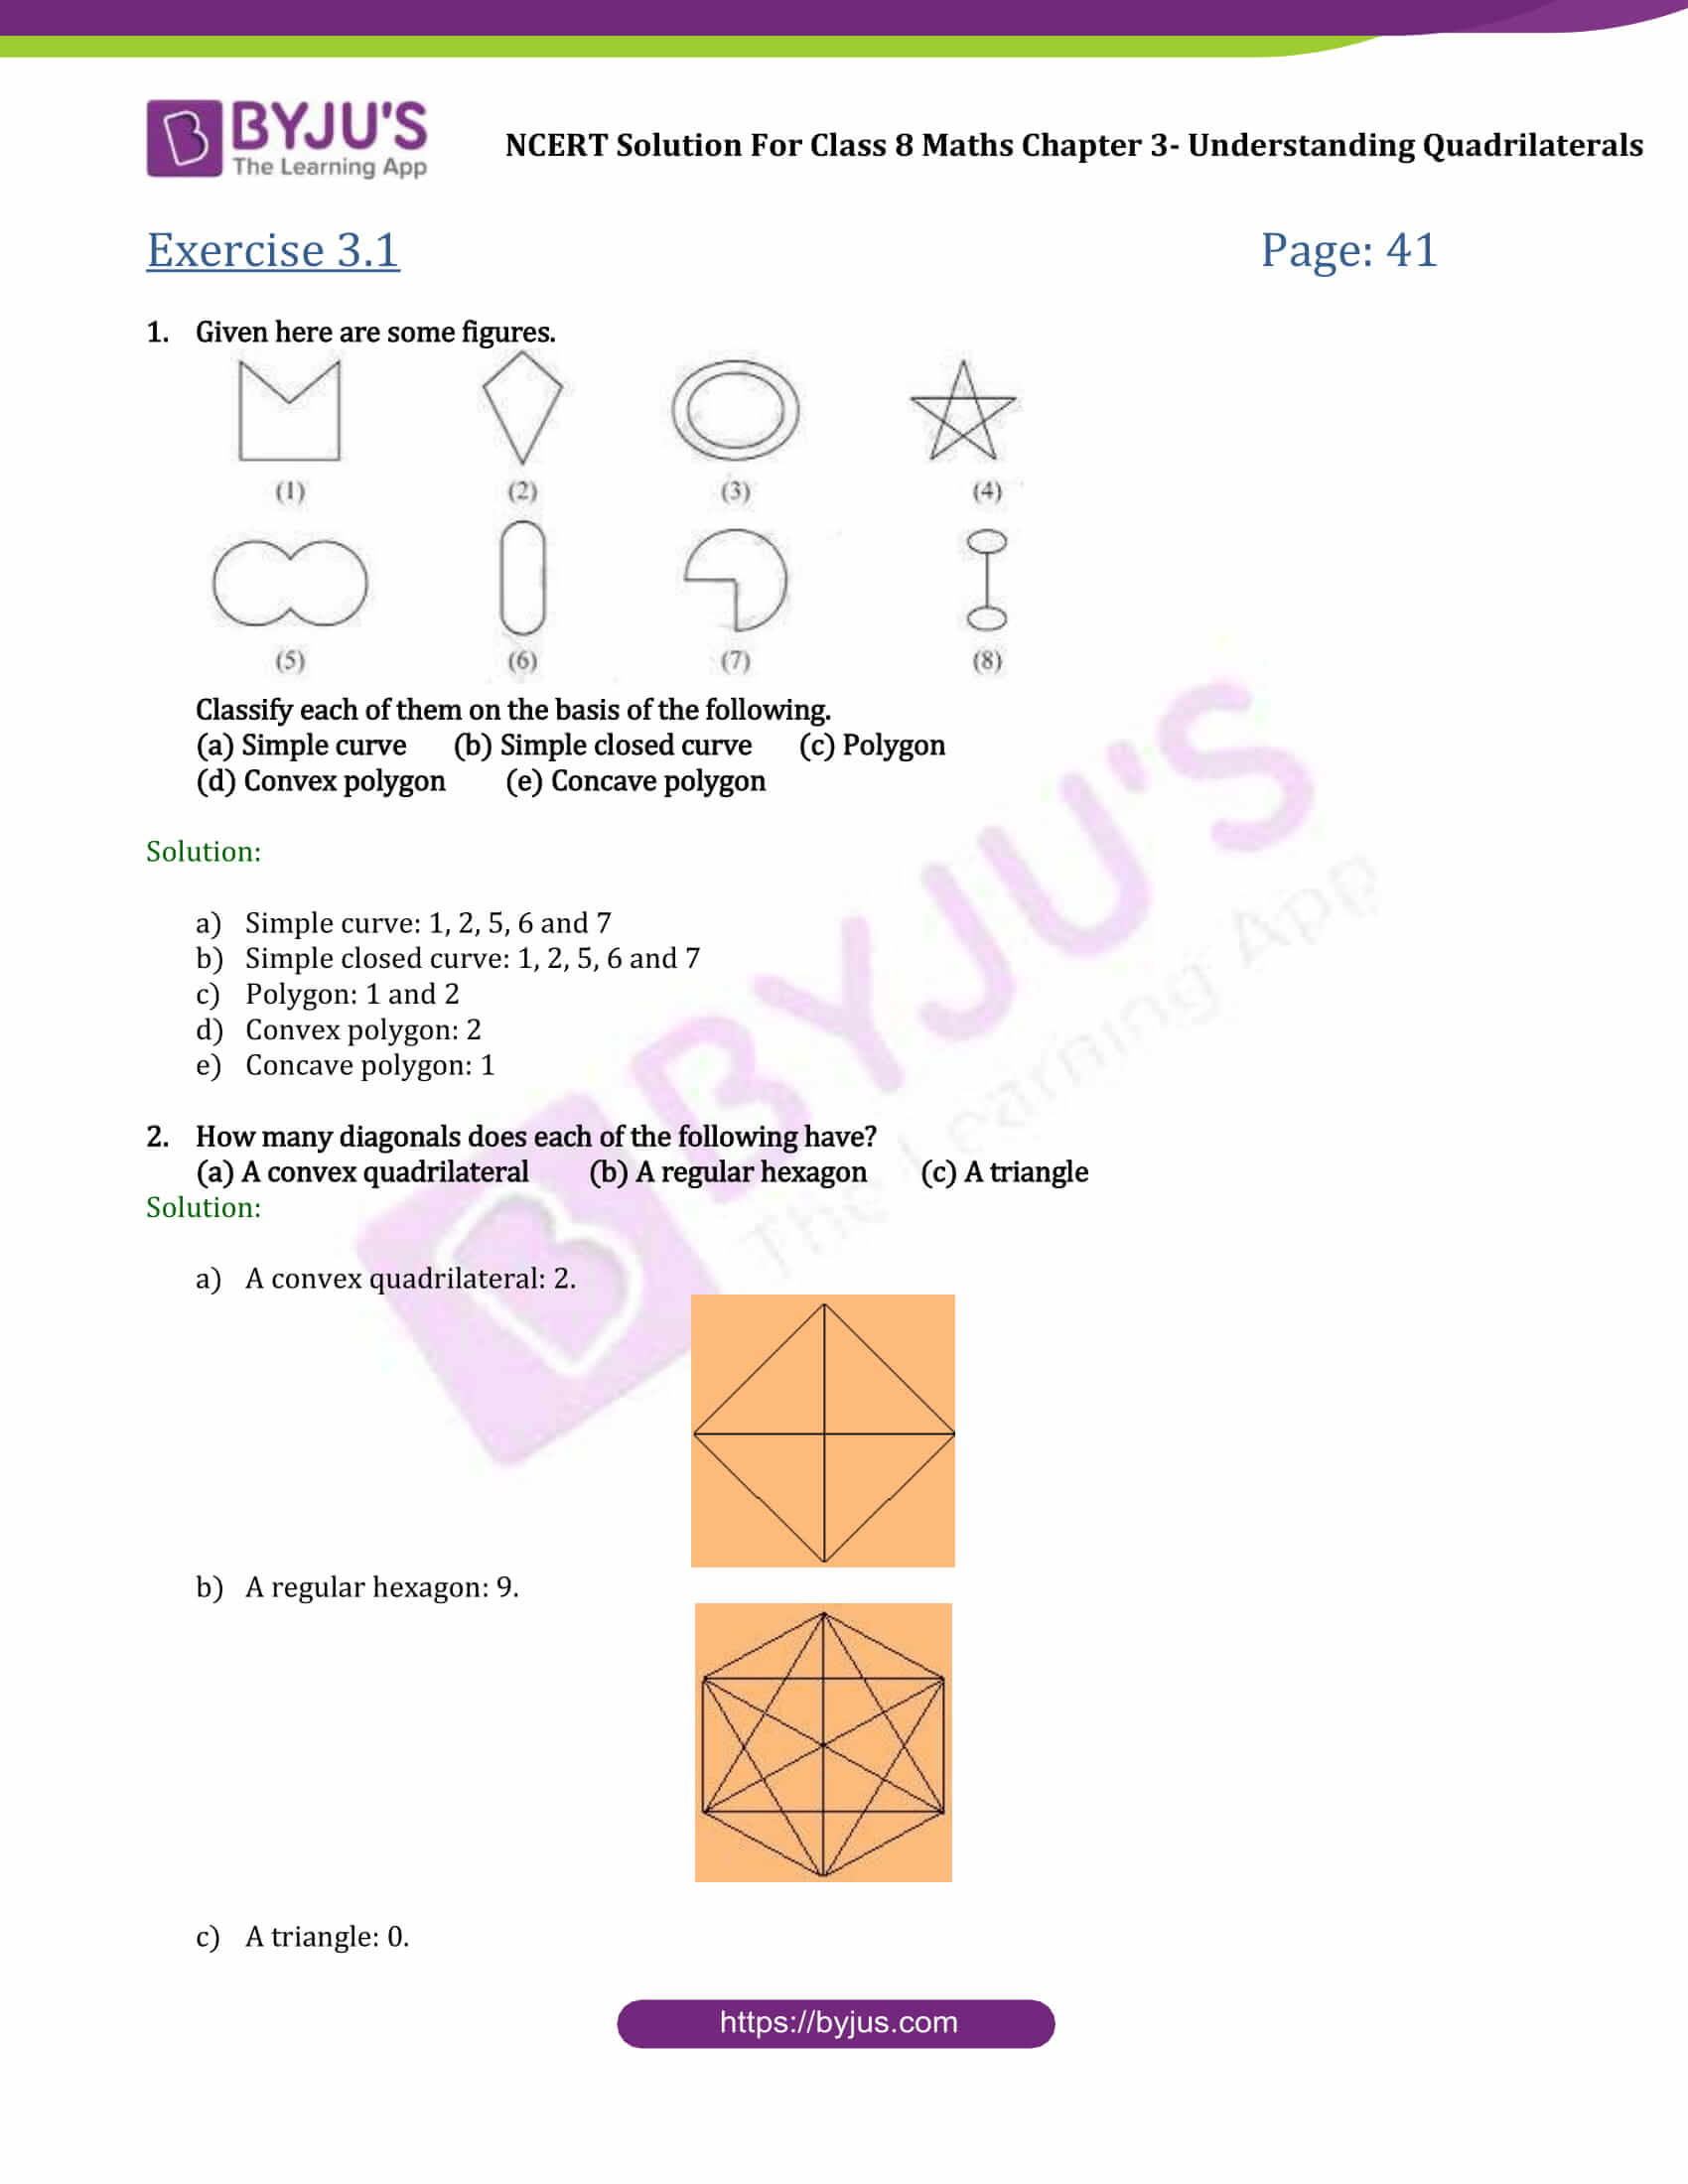 NCERT Solutions Class 8 Maths Chapter 3 Understanding